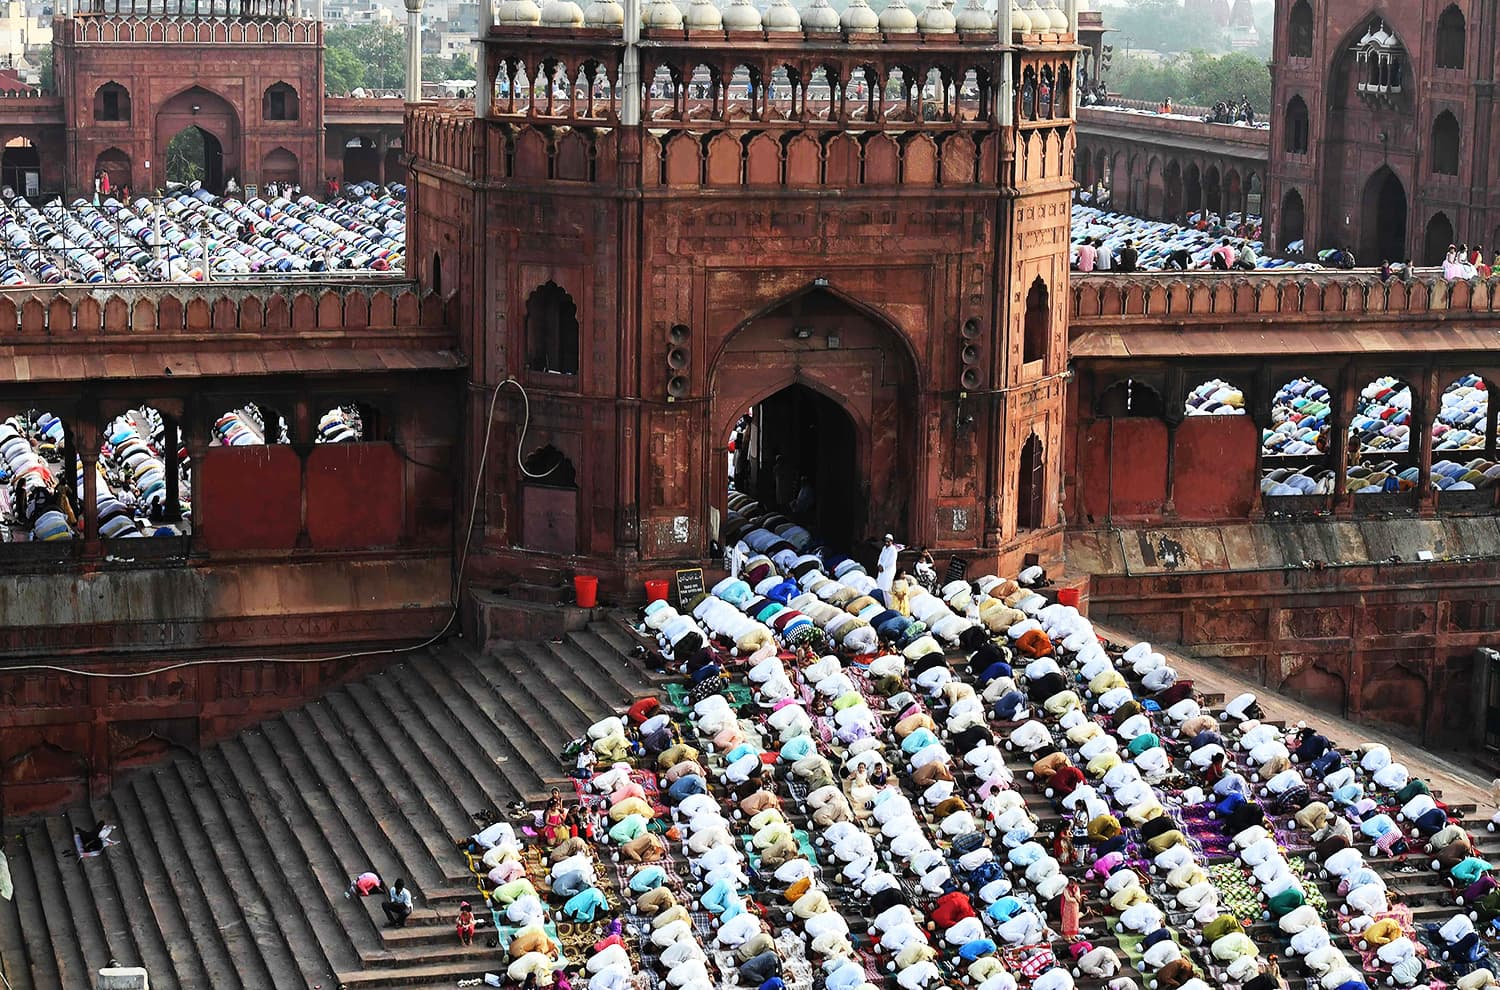 Indian Muslims offer prayers during Eid at the Jama Masjid mosque in New Delhi. ─ AFP